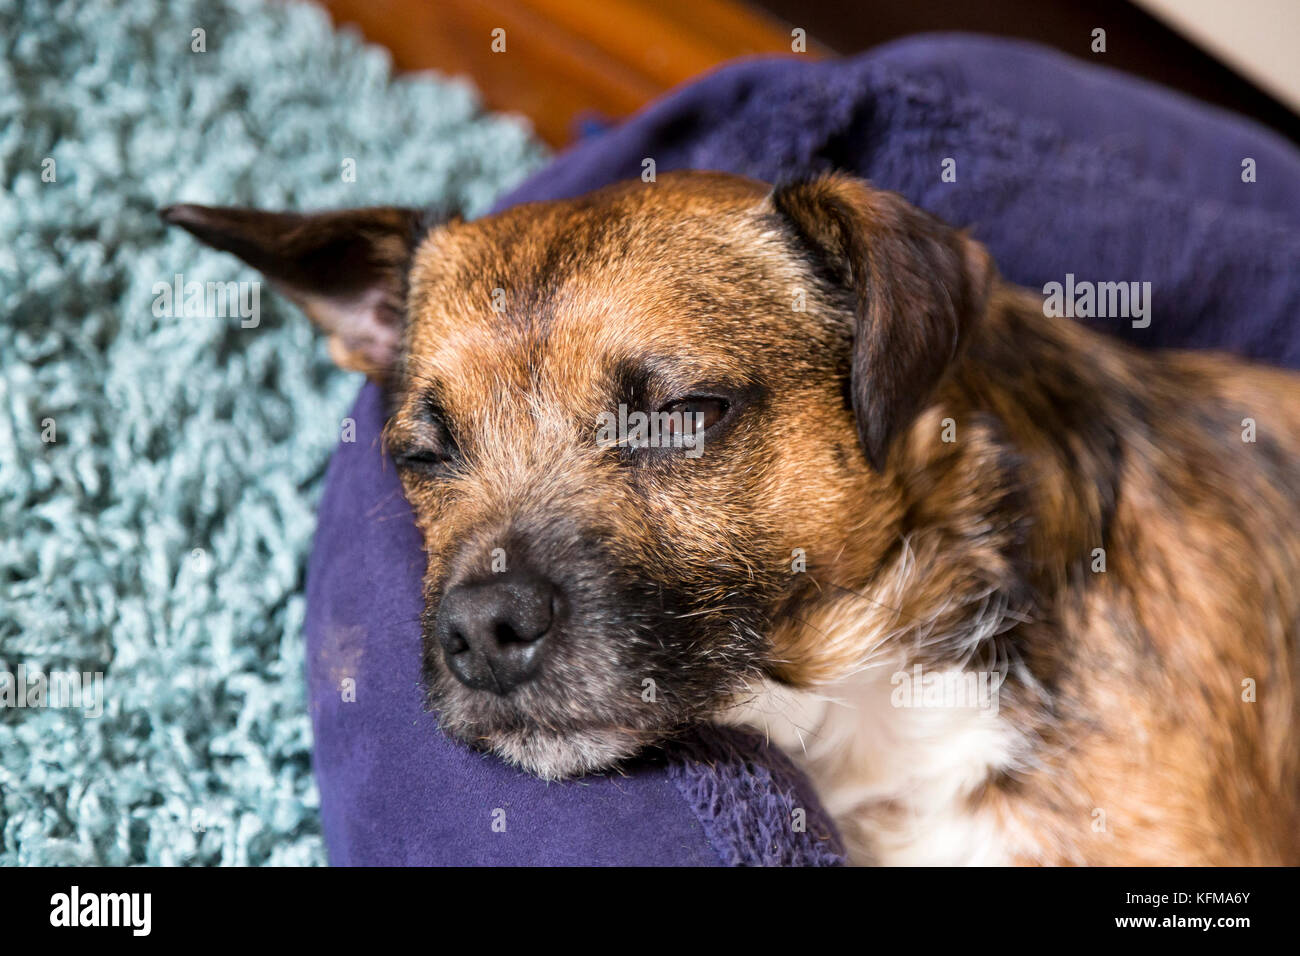 small terrier pet dog, snoozing on bed, eyes half open - Stock Image